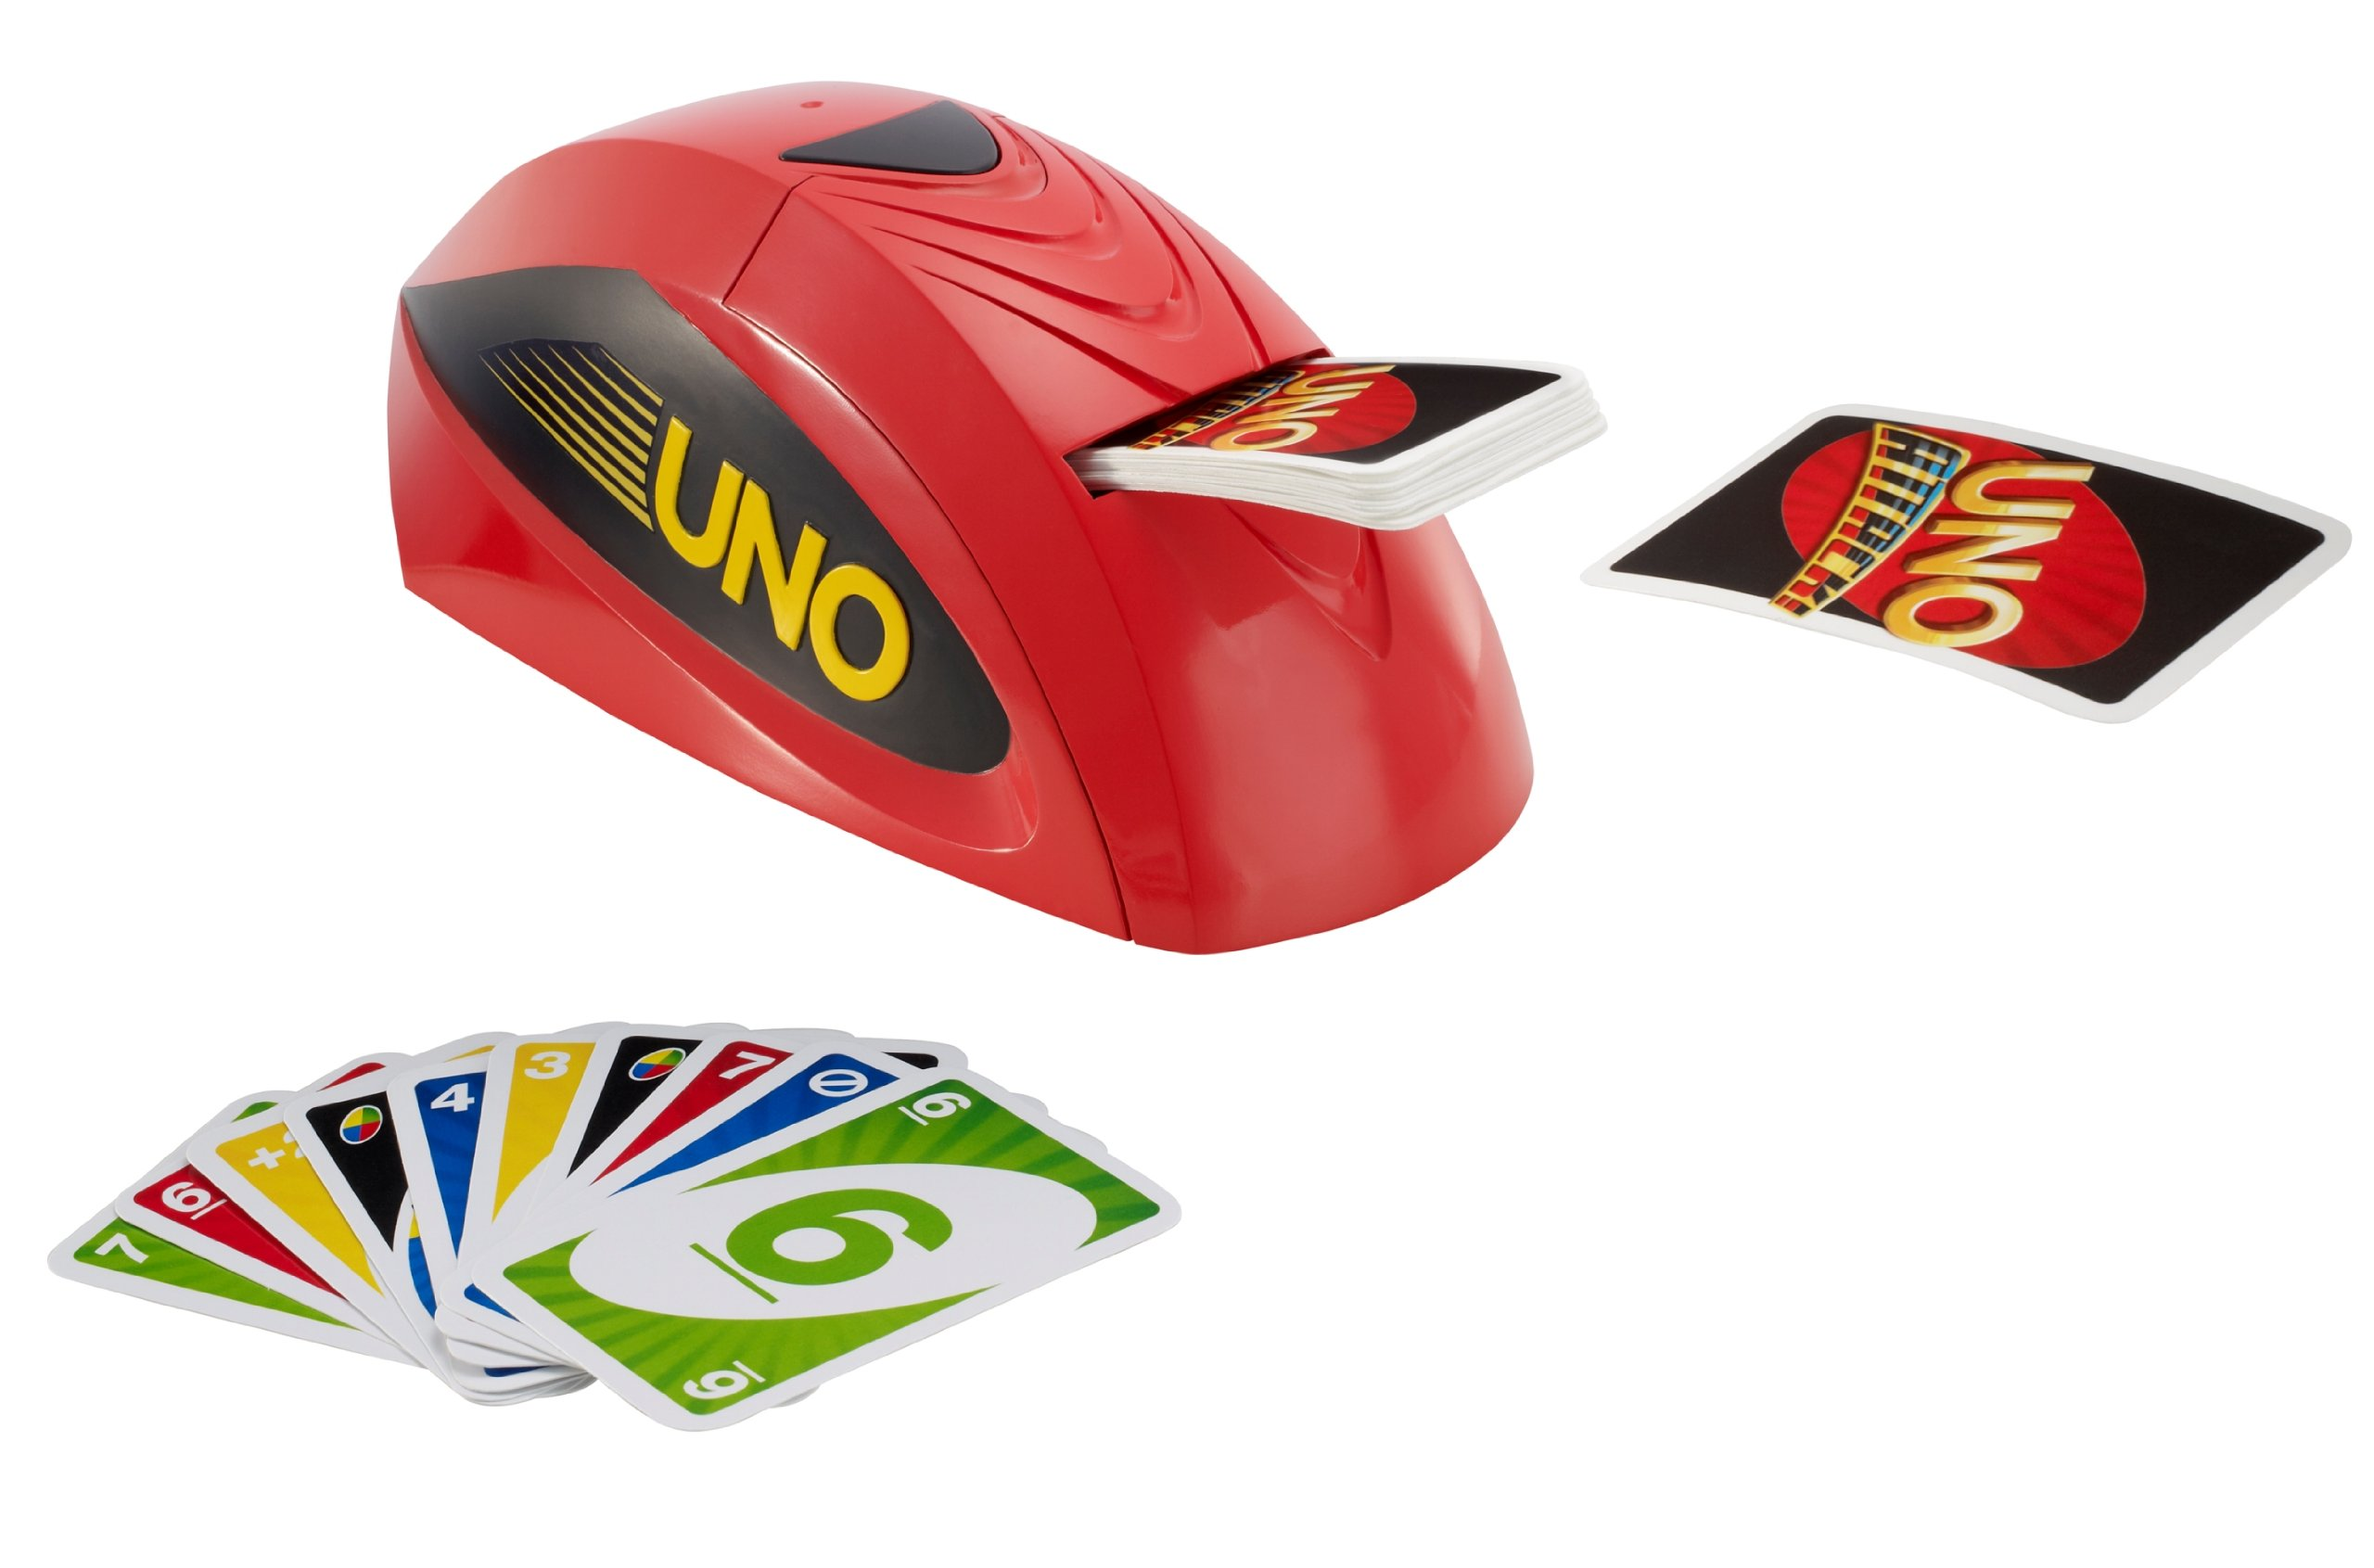 UNO Attack Game product image